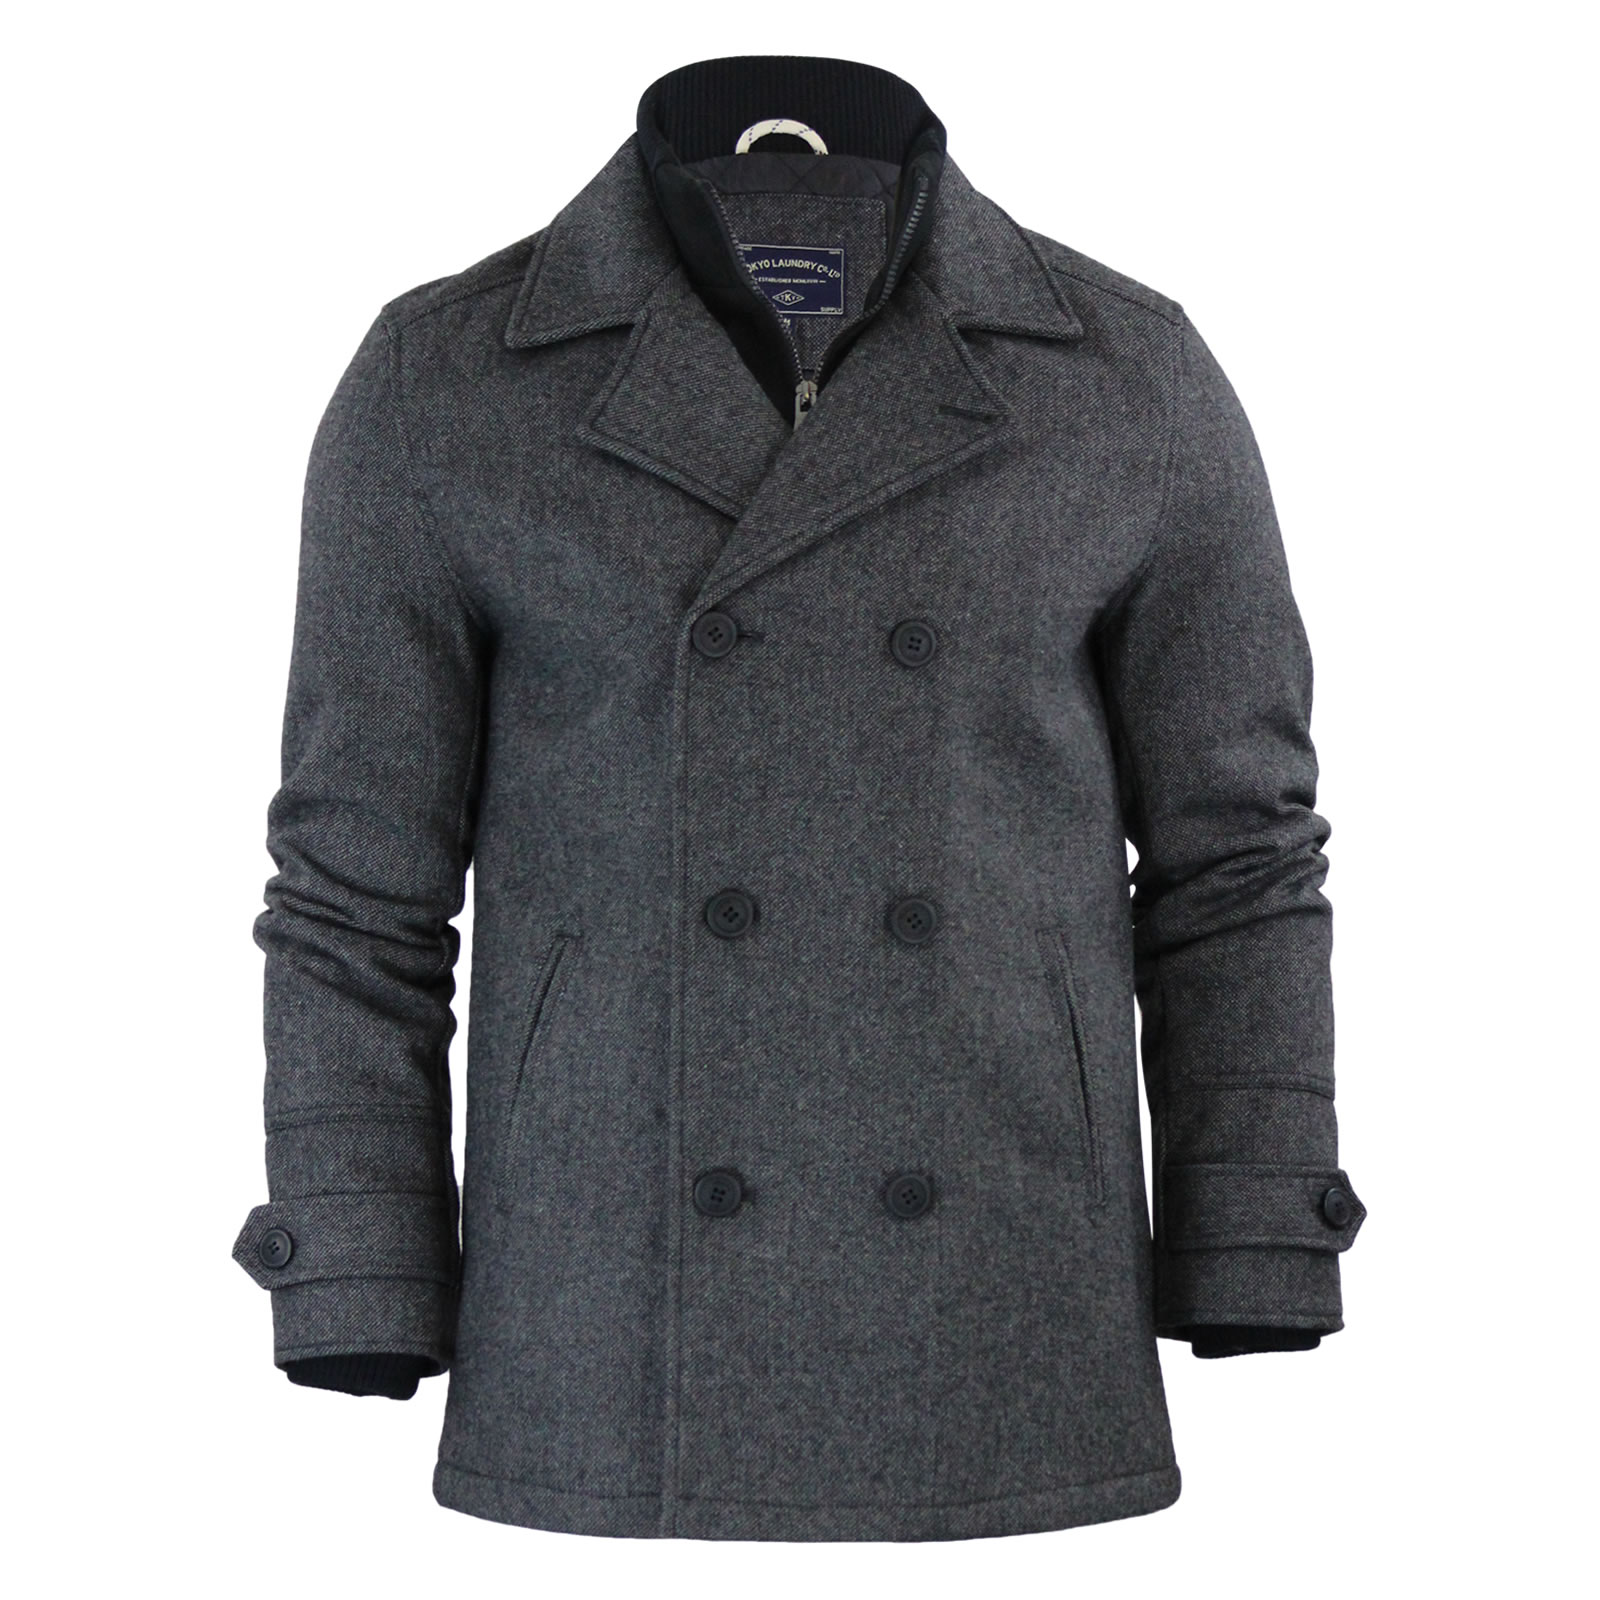 An expert guide to men's peacoats, including its history, how to wear one, the different types of peacoats available & the best pea coats you can buy in